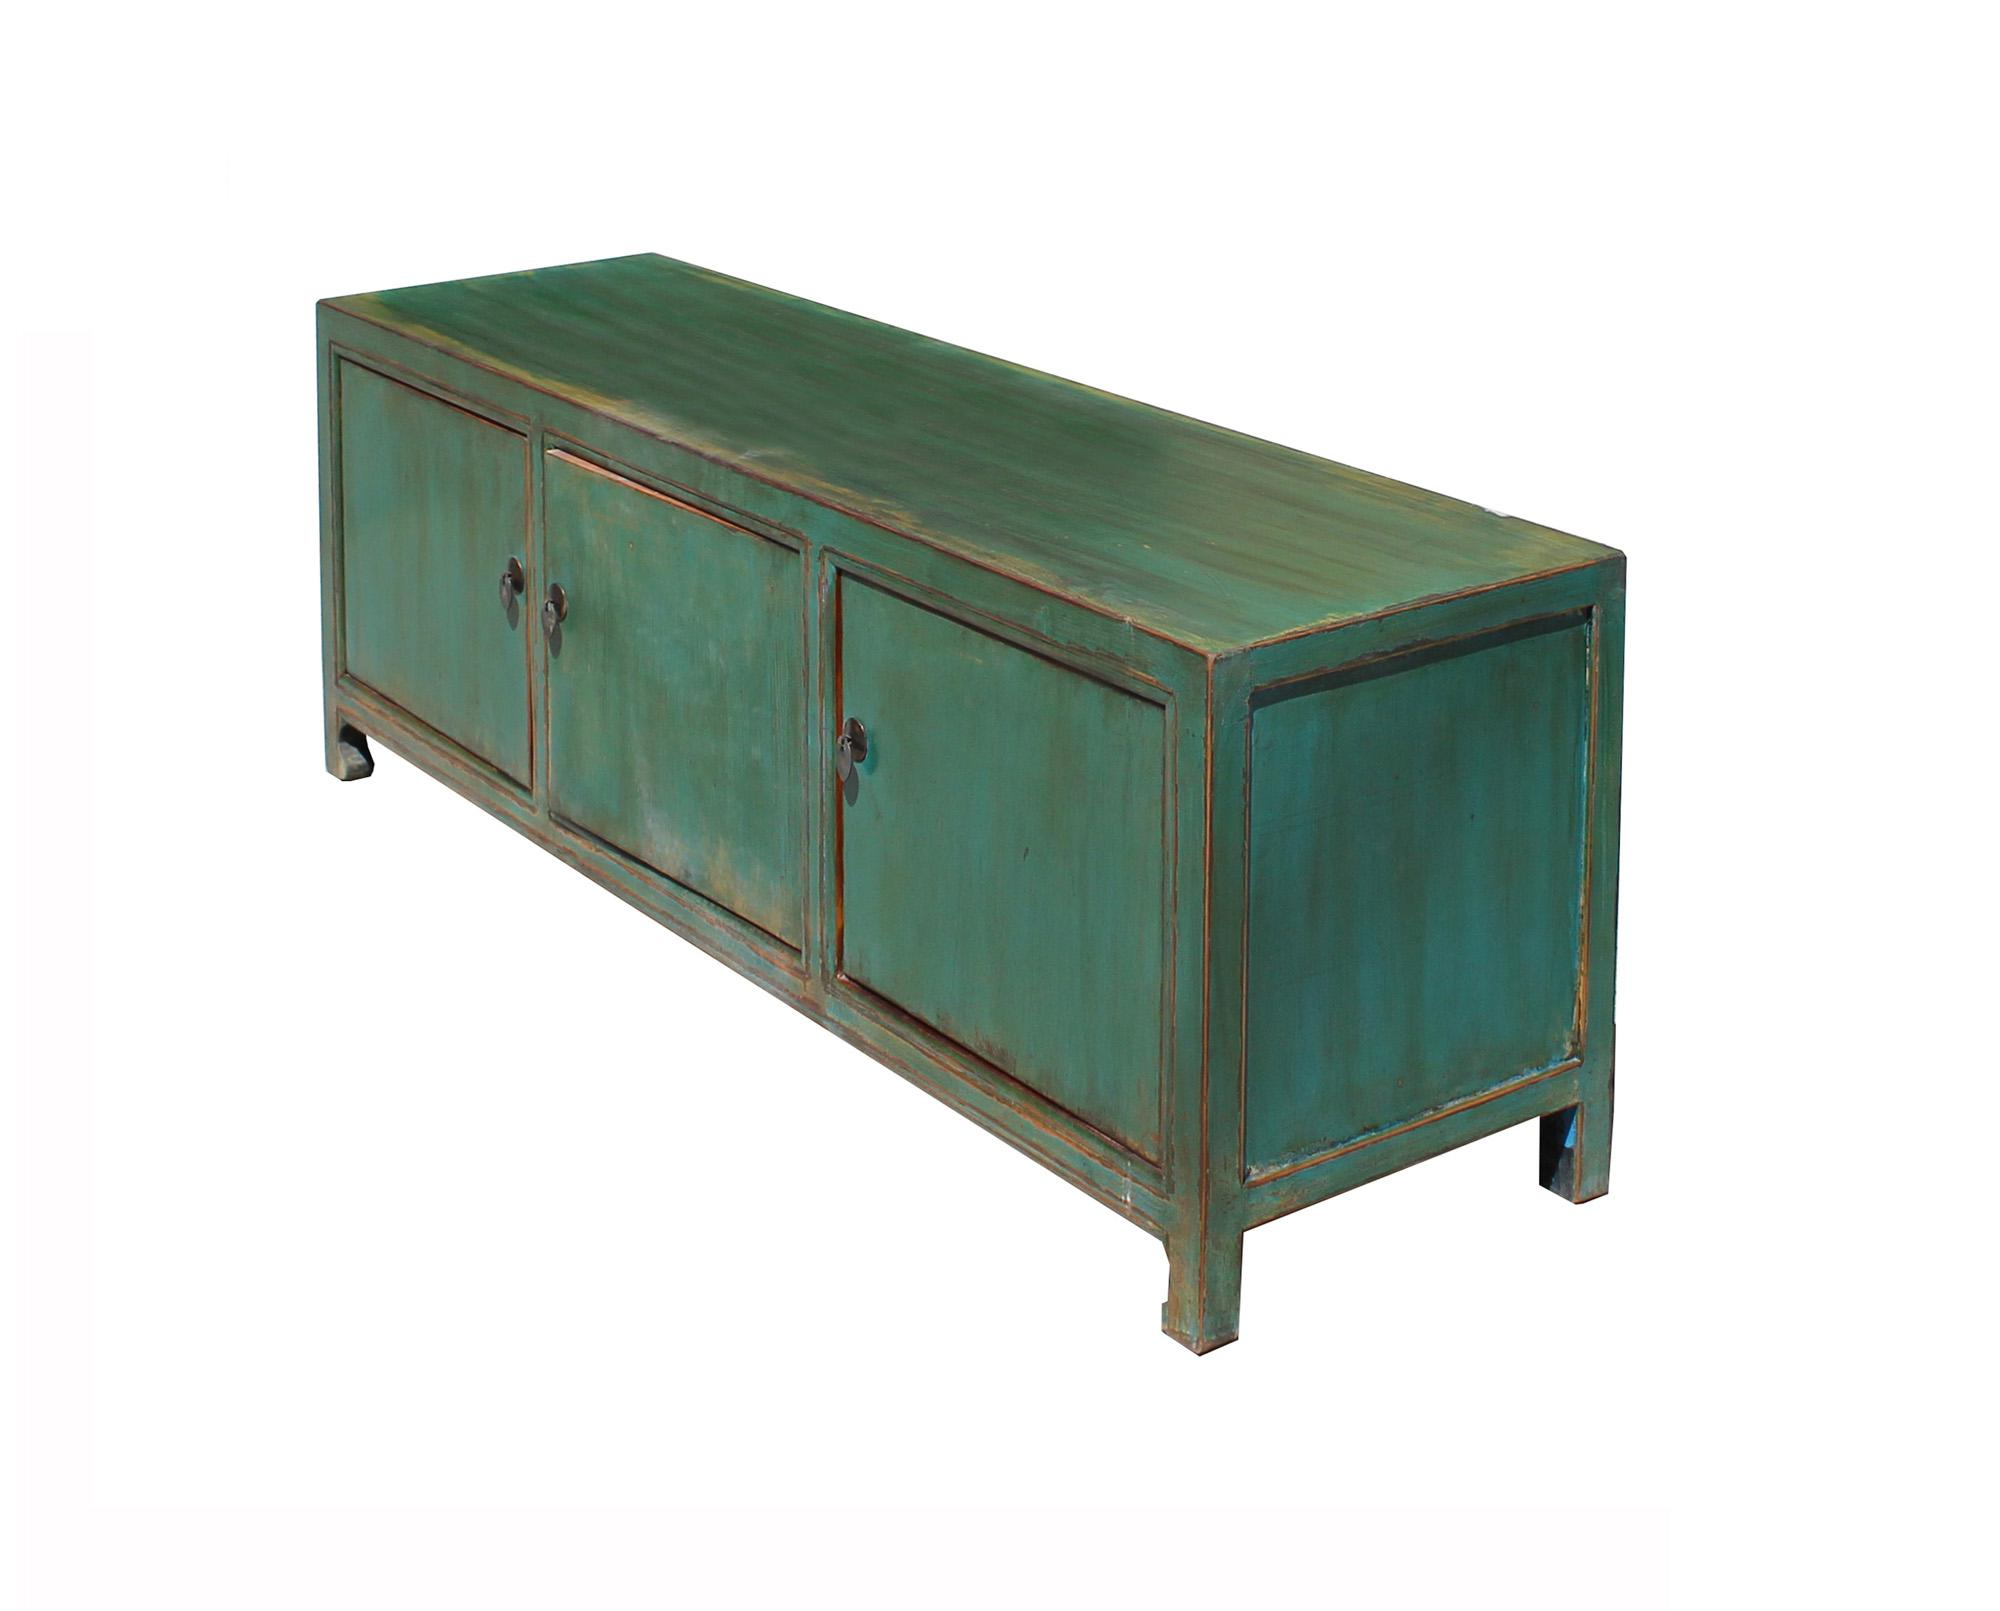 This Is A Low Console TV Cabinet With Oriental Simple Metal Hardware As An  Accent.